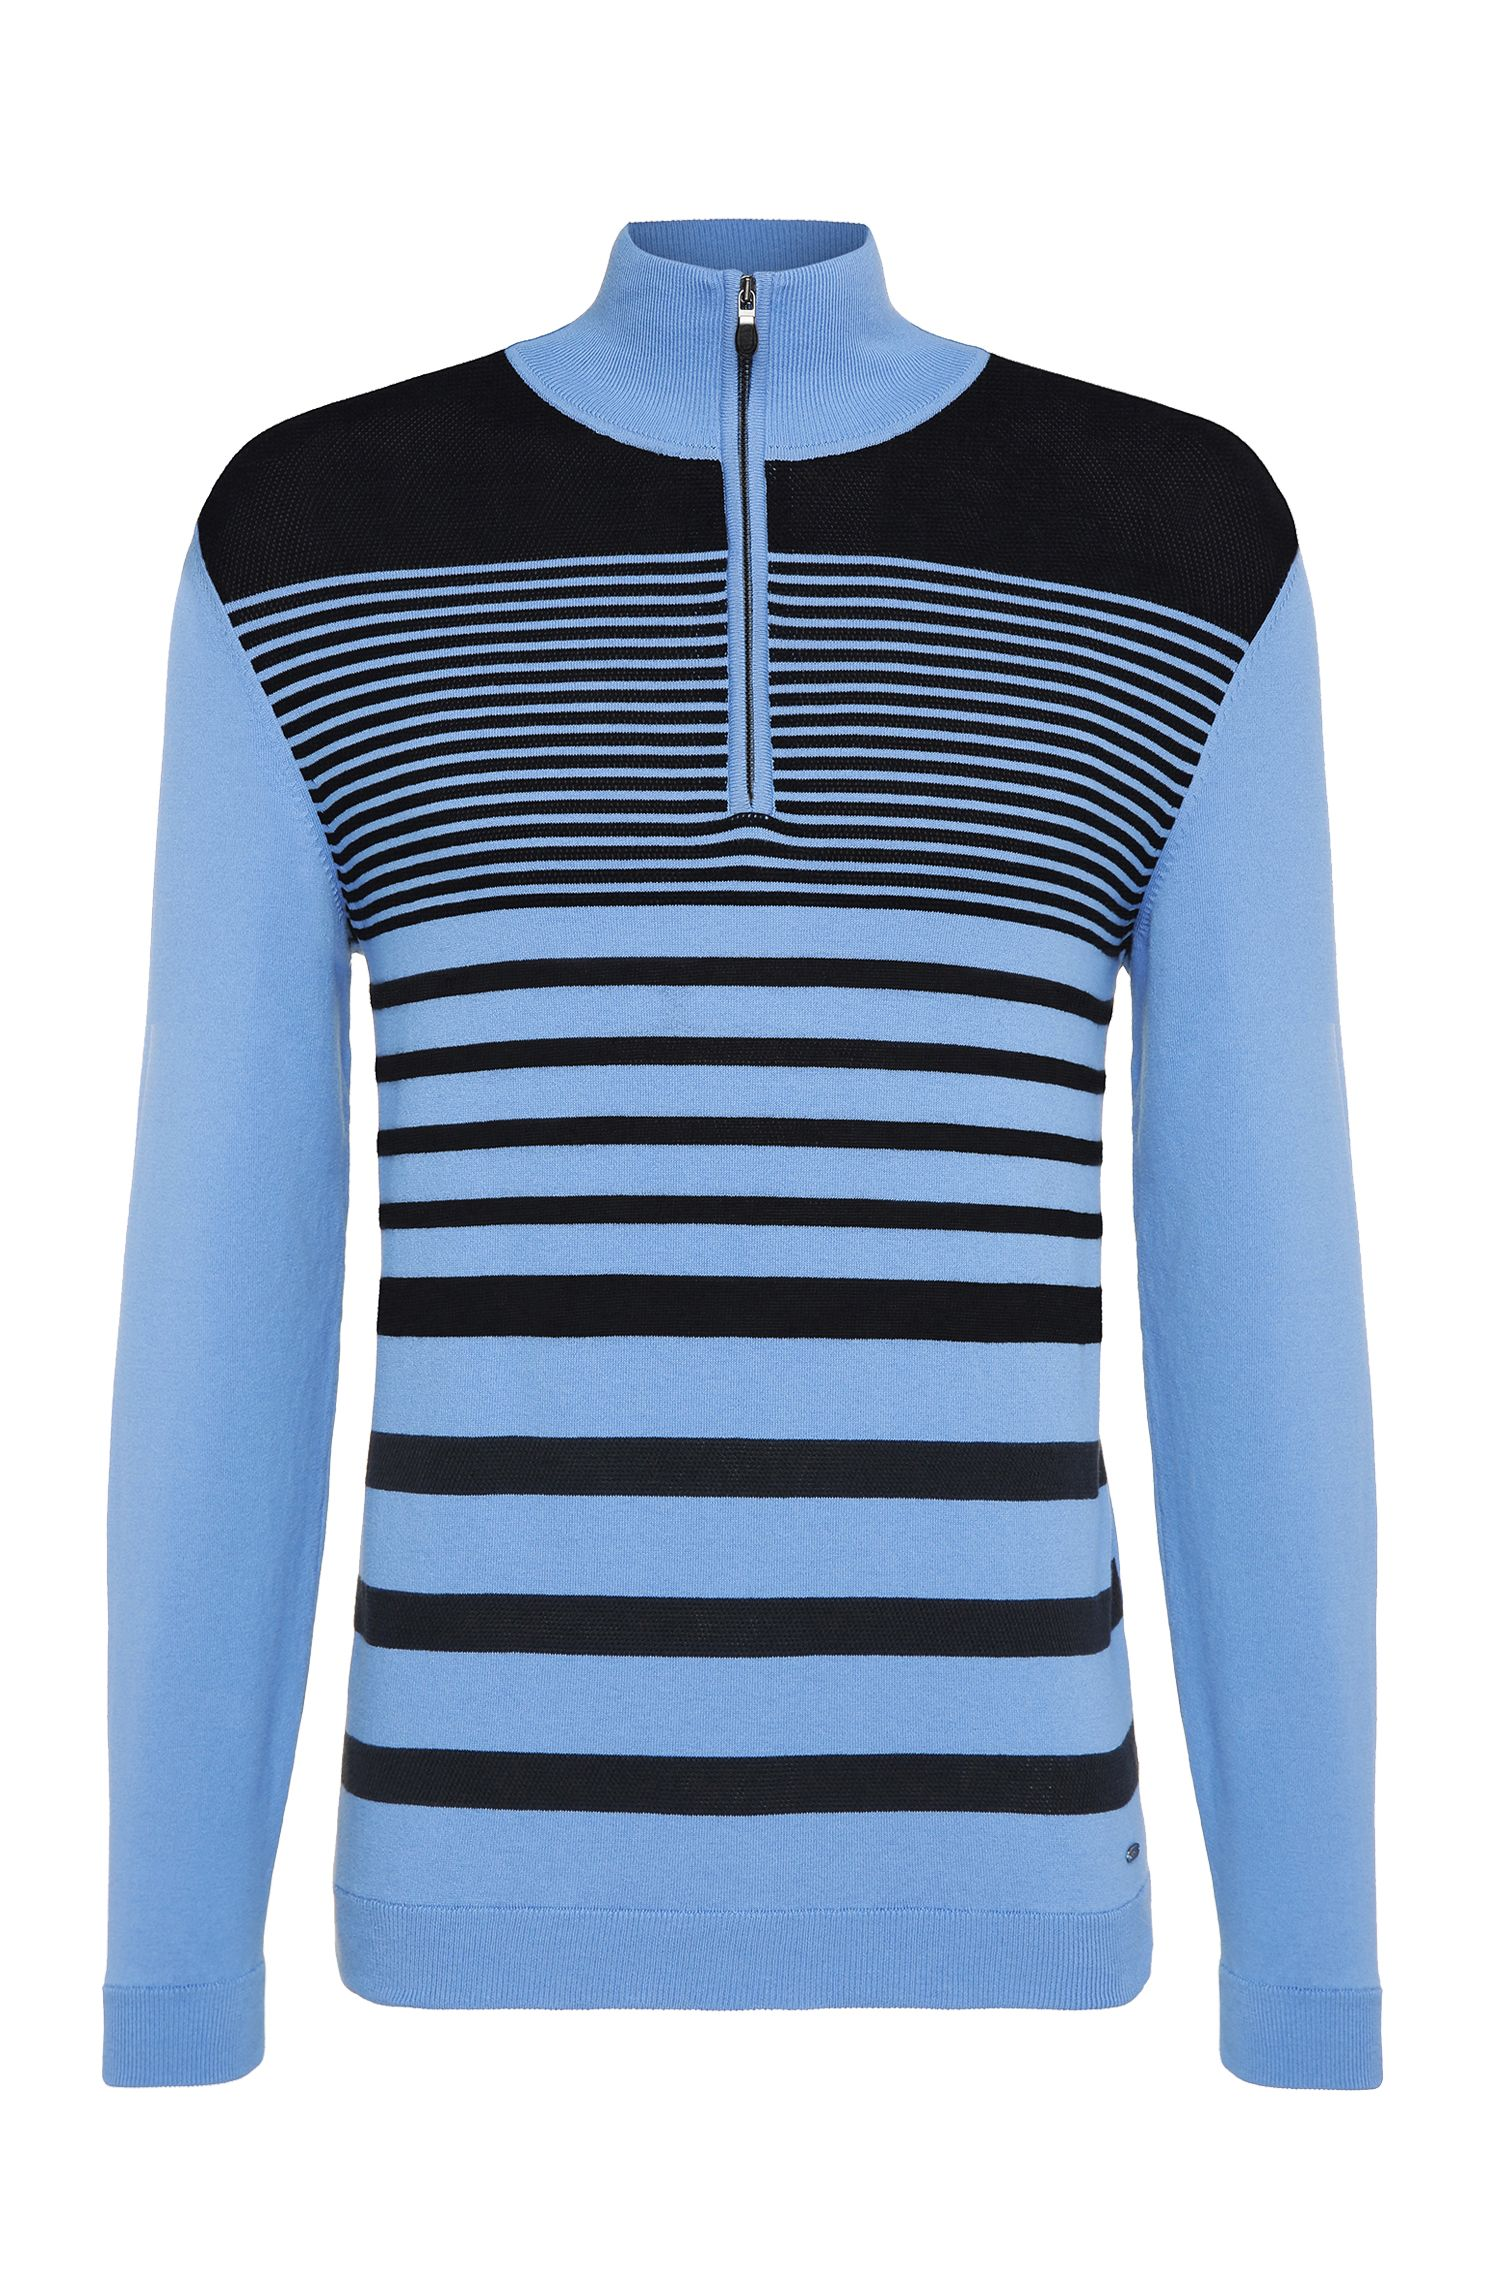 Striped Stretch Cotton Half-Zip Sweater, Slim Fit | Zoco